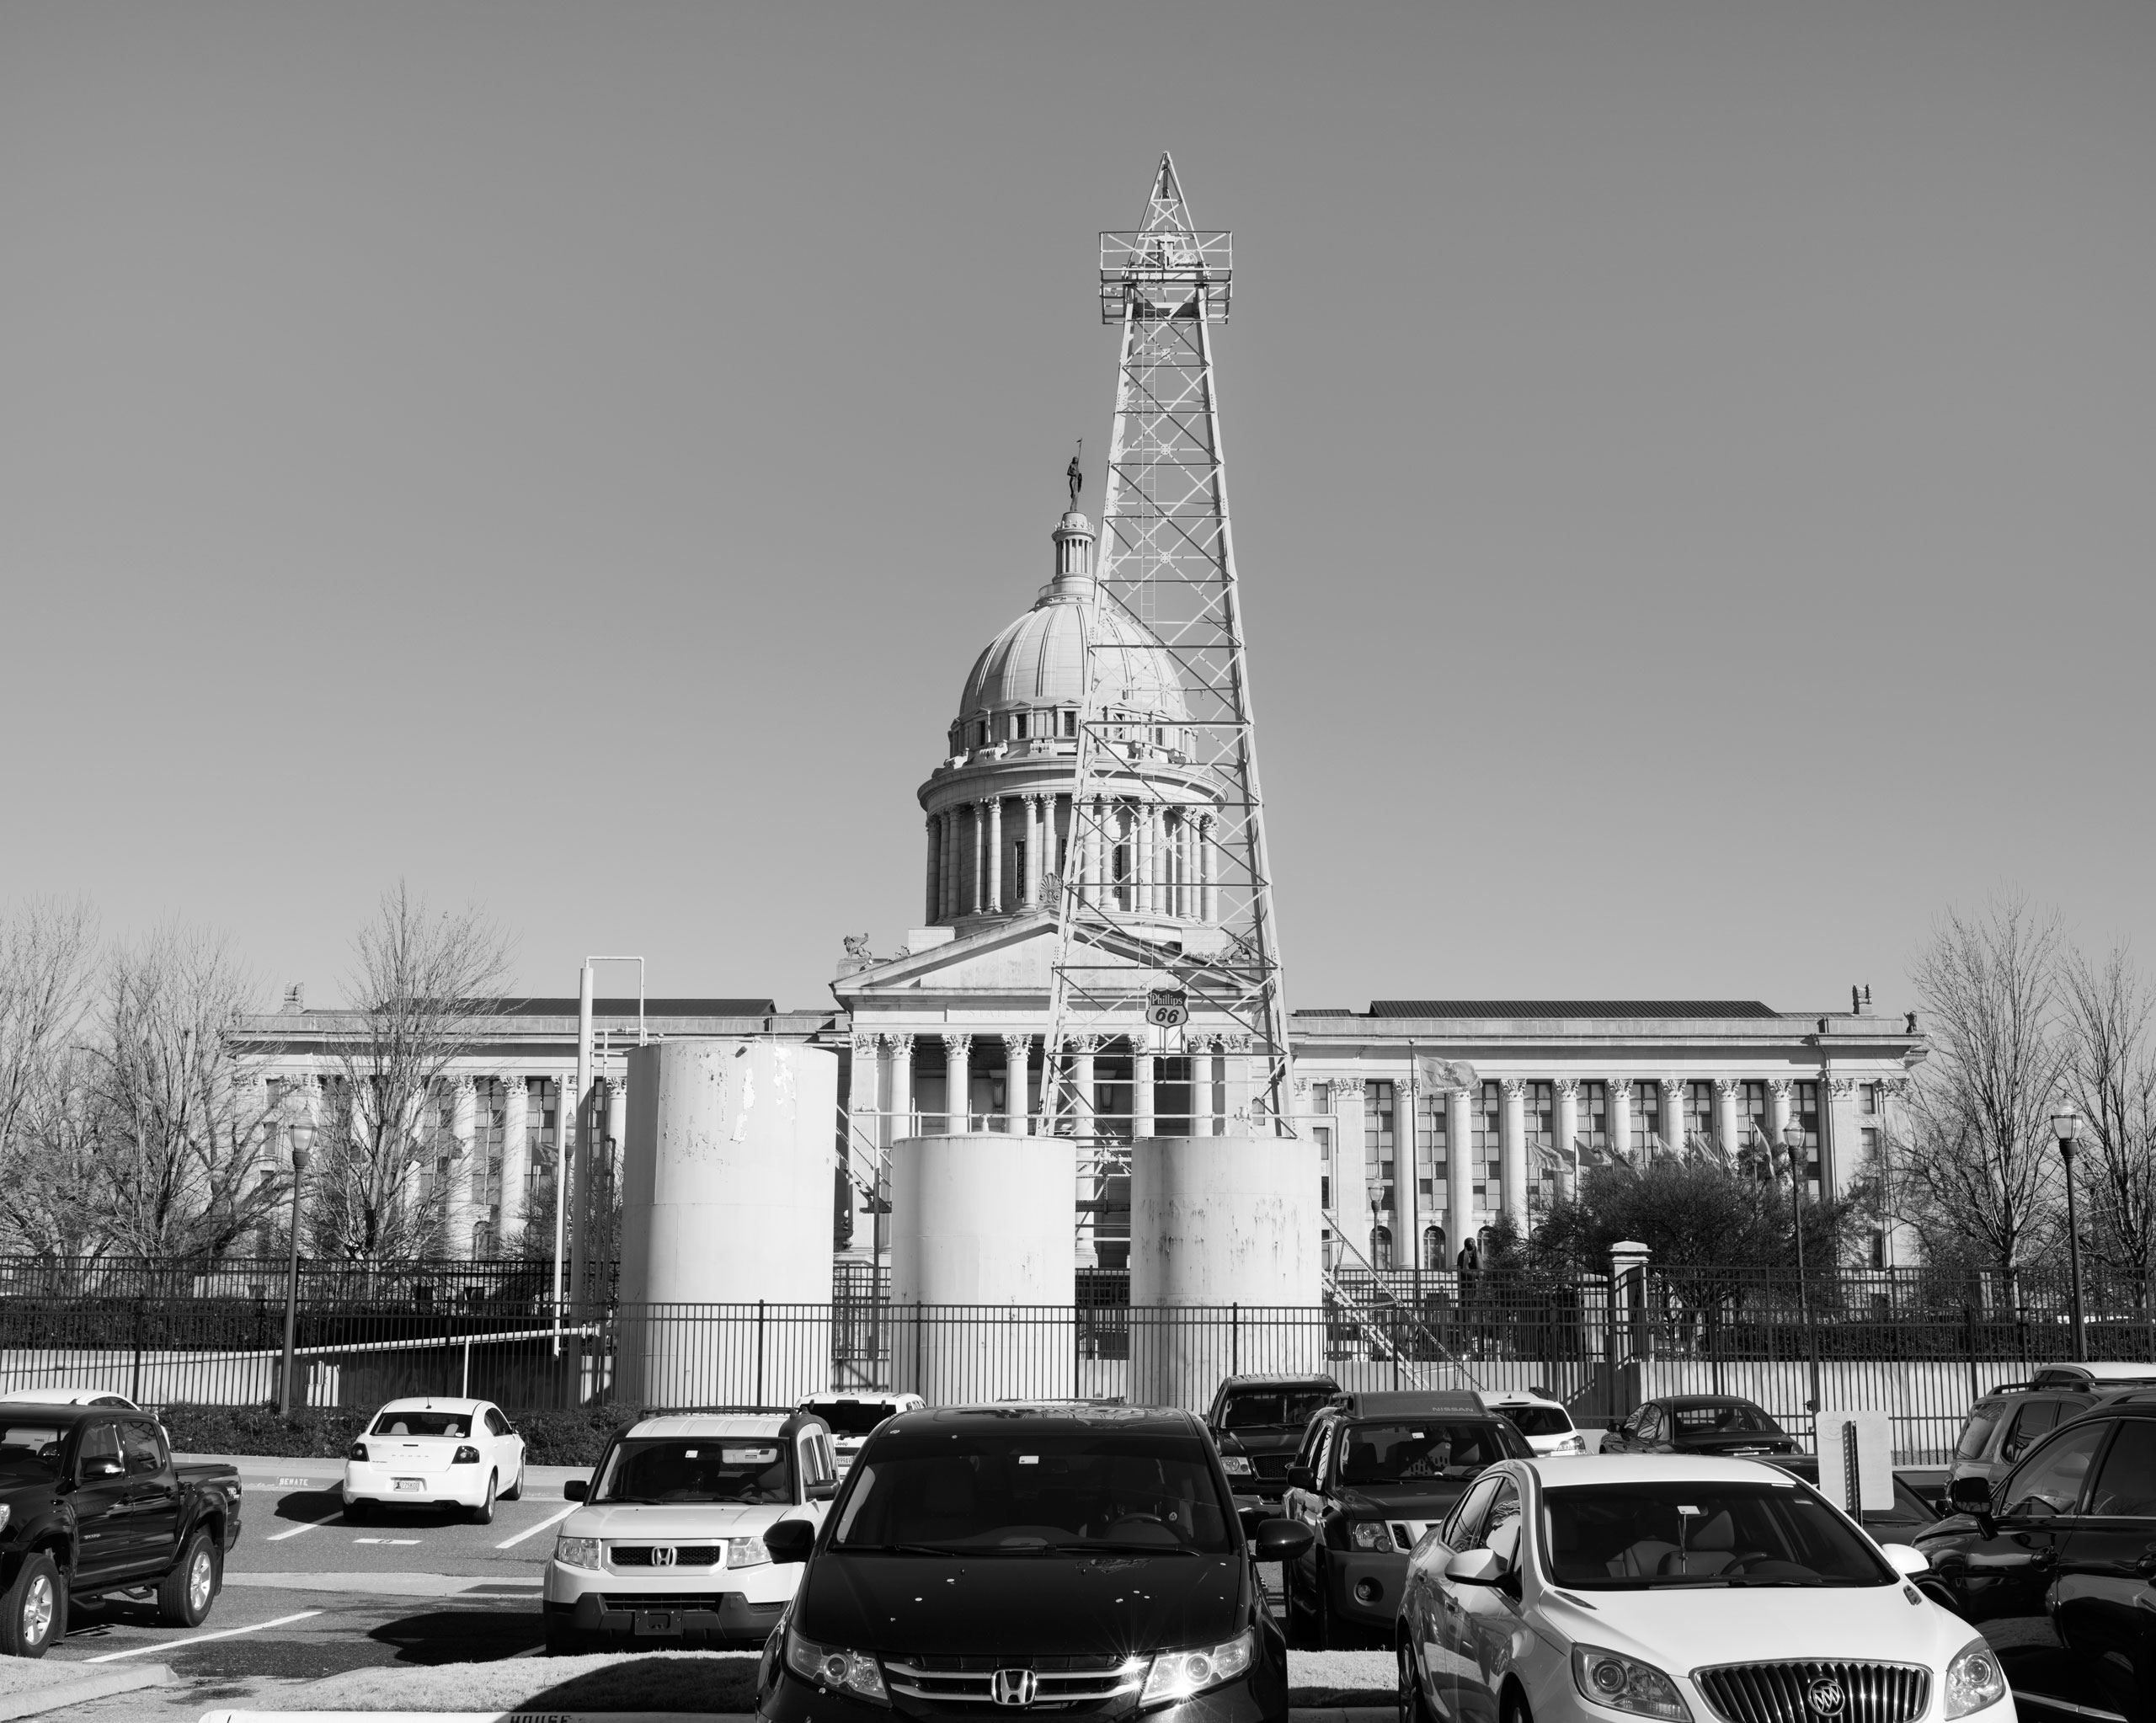 An oil rig stands in front of the Oklahoma State Capitol building, Oklahoma City, OK